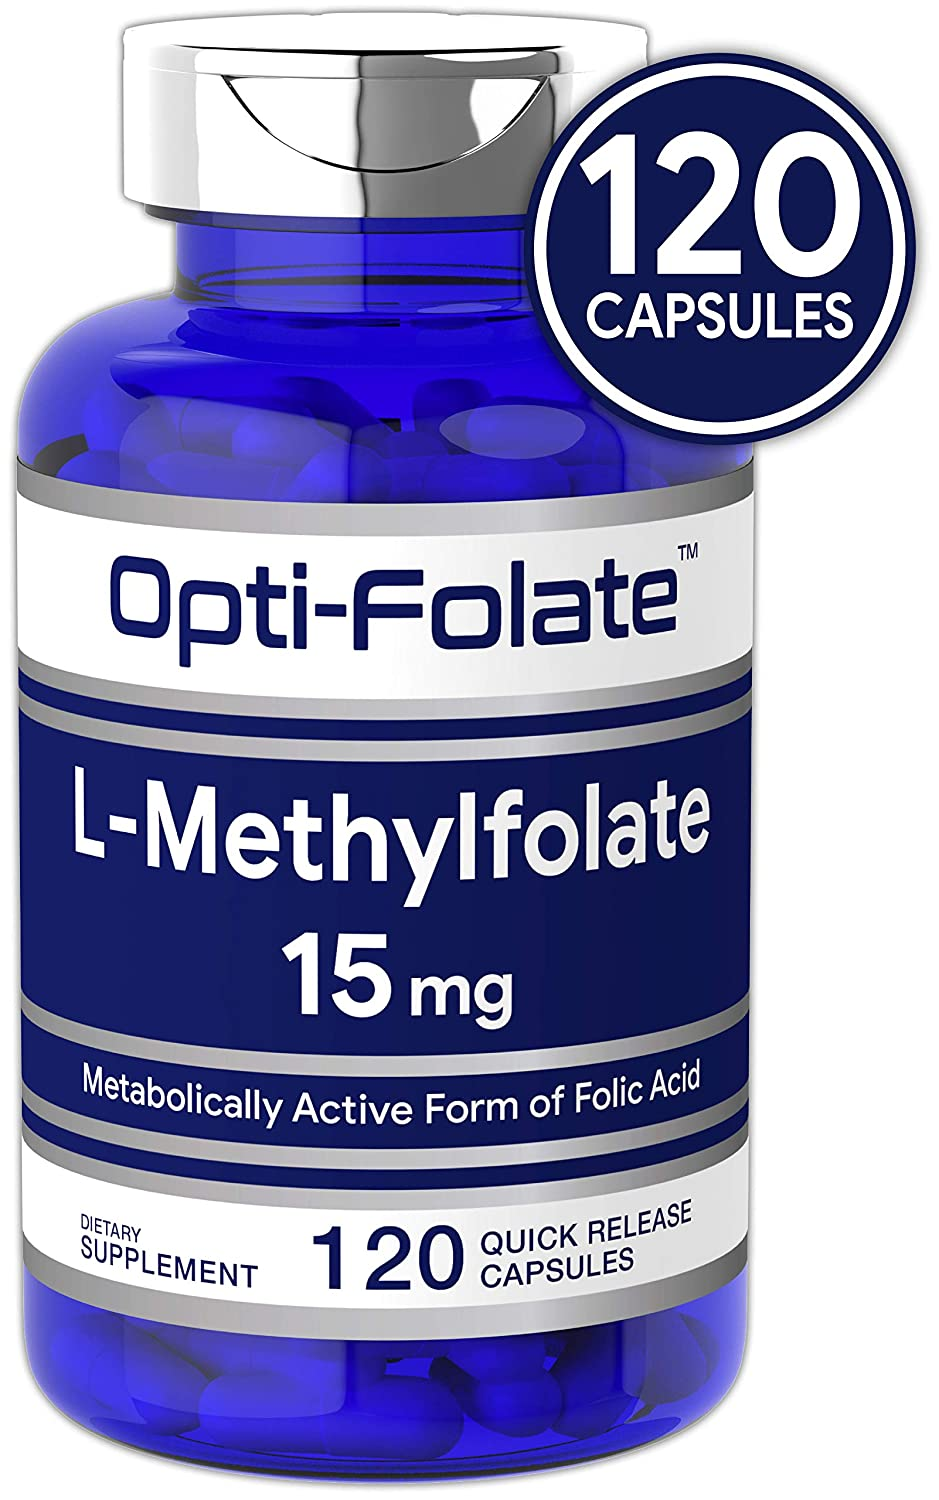 L Methylfolate 15mg 120 Capsules Value Size Max Potency Optimized and Activated Non-GMO, Gluten Free Methyl Folate, 5-MTHF by Opti-Folate